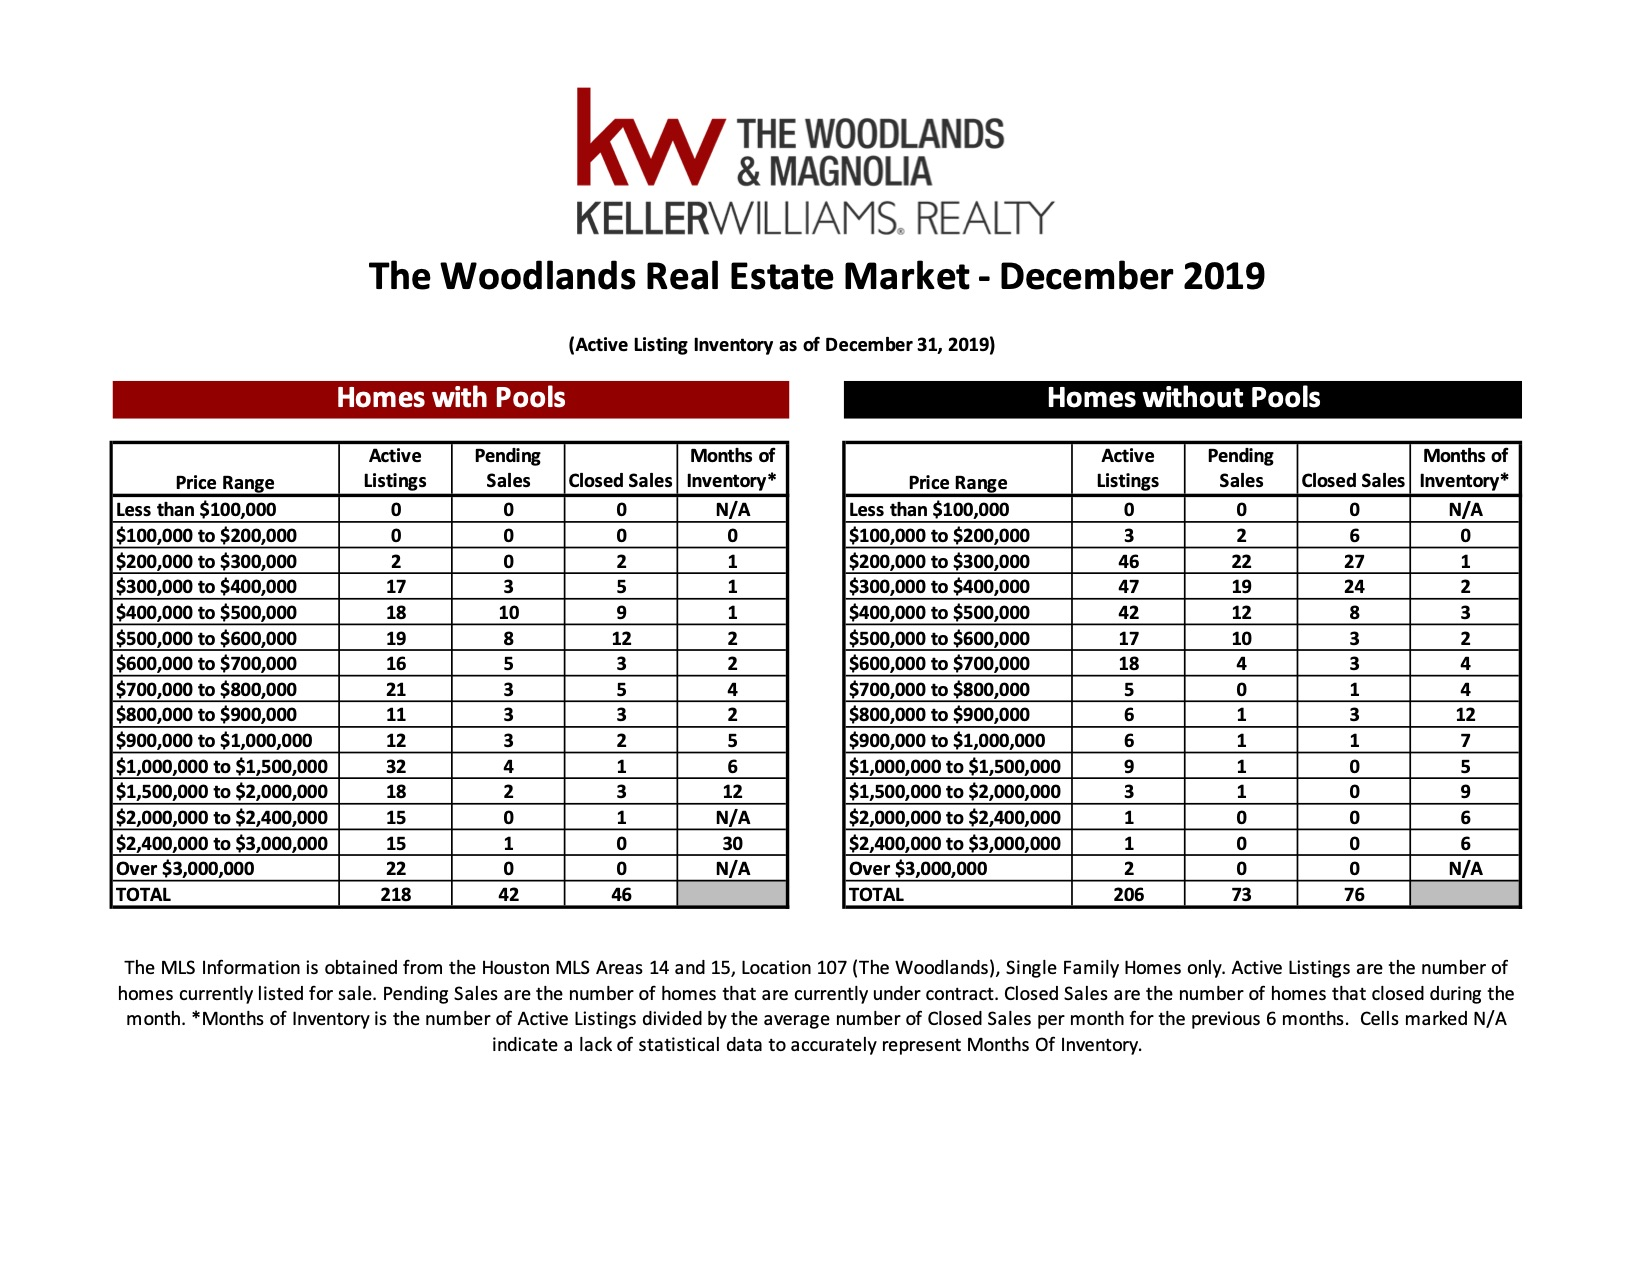 , December 2019 MarketWatch Report – The Woodlands, KW Woodlands